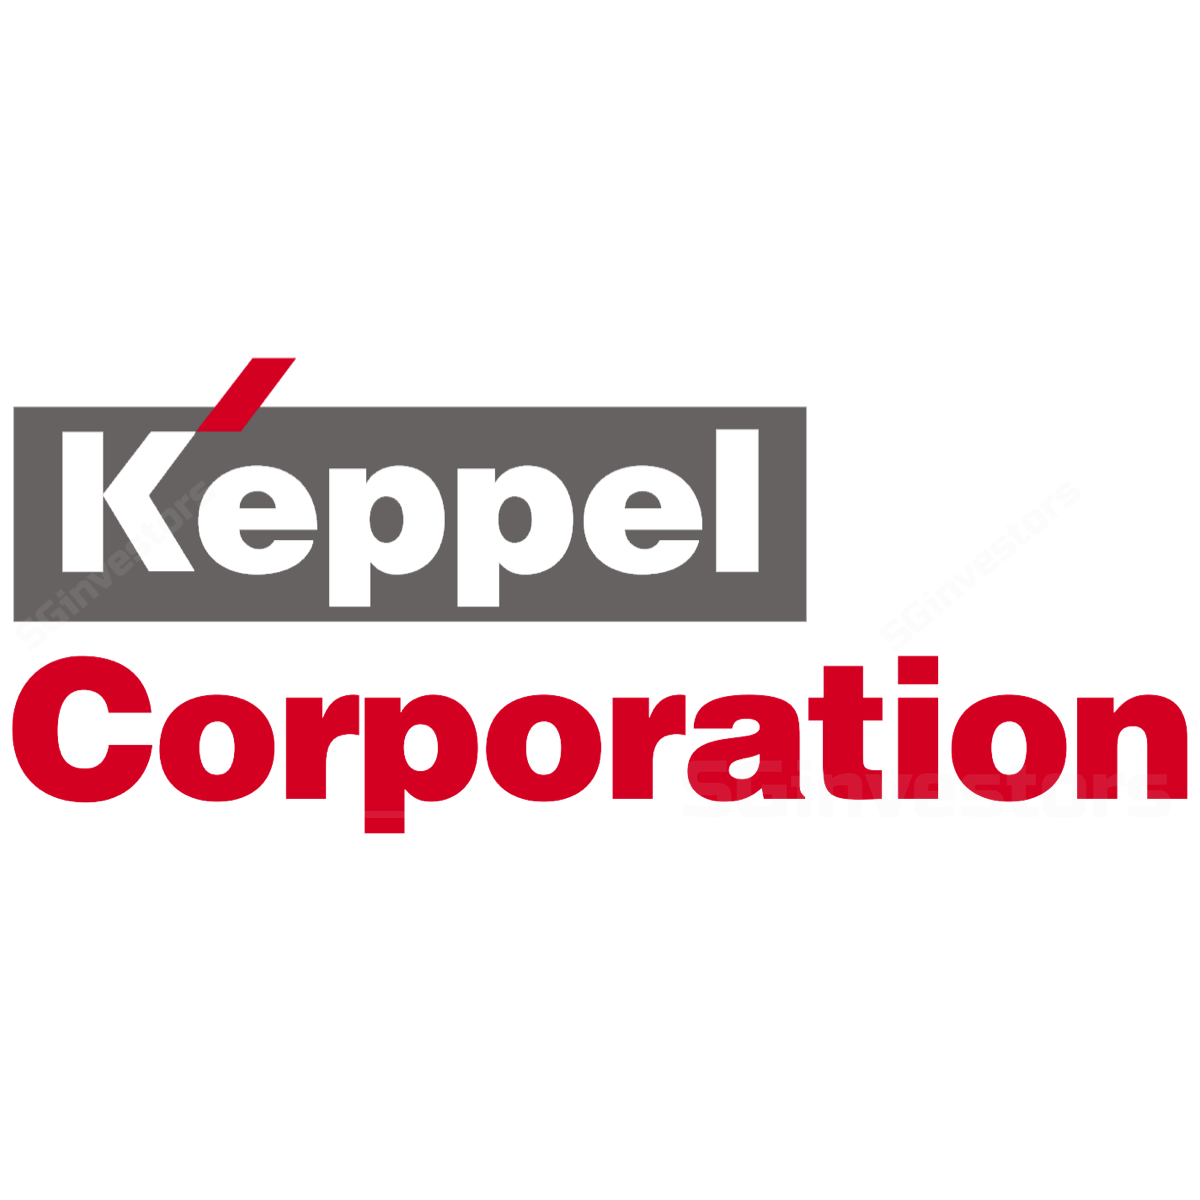 Keppel Corporation - DBS Vickers 2018-03-12: Awilco Contract In The Bag